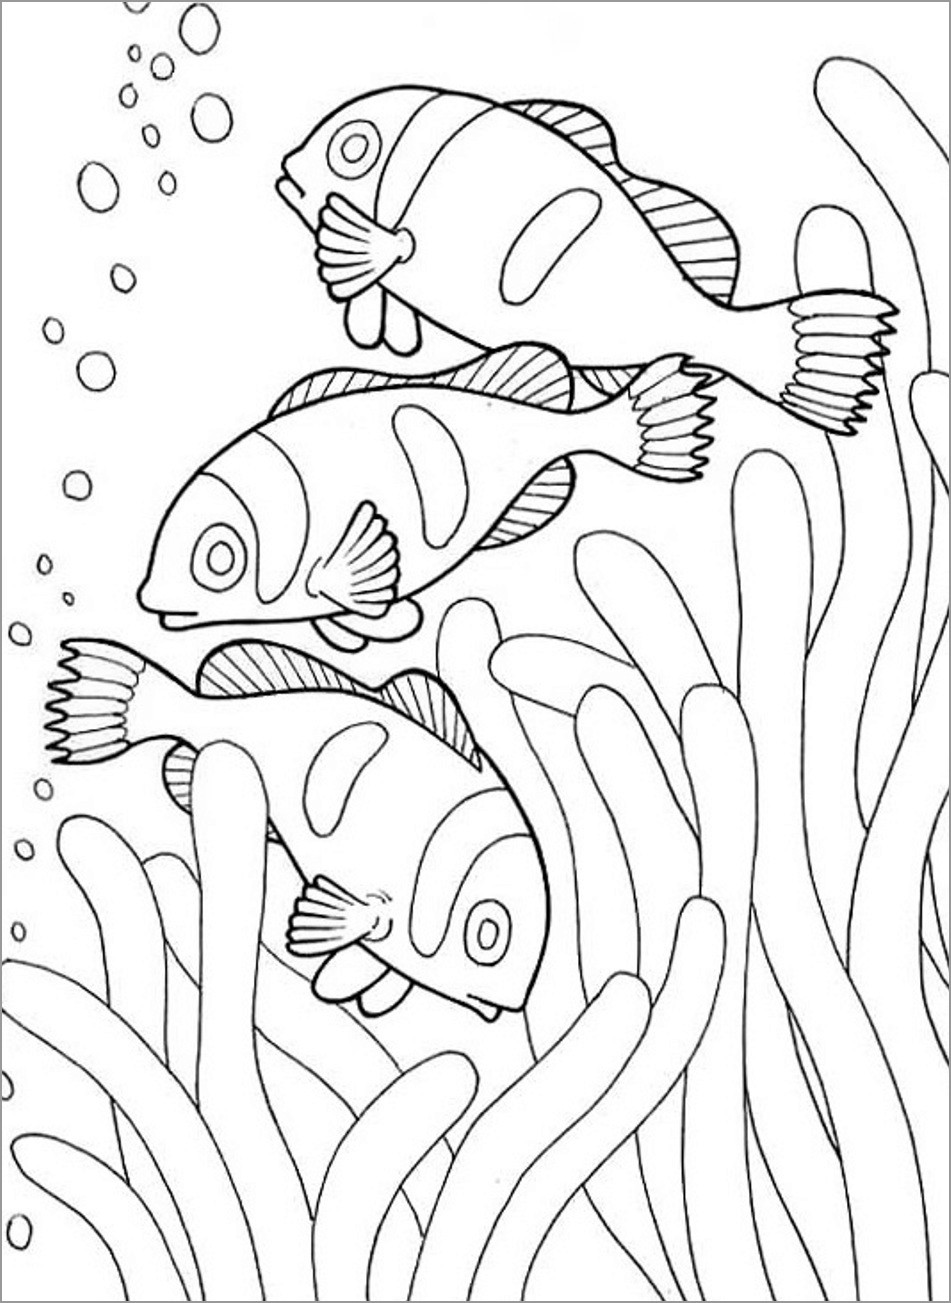 sea life animals coloring pages seal the aquarium colouring book richard merritt seal animals sea pages life coloring